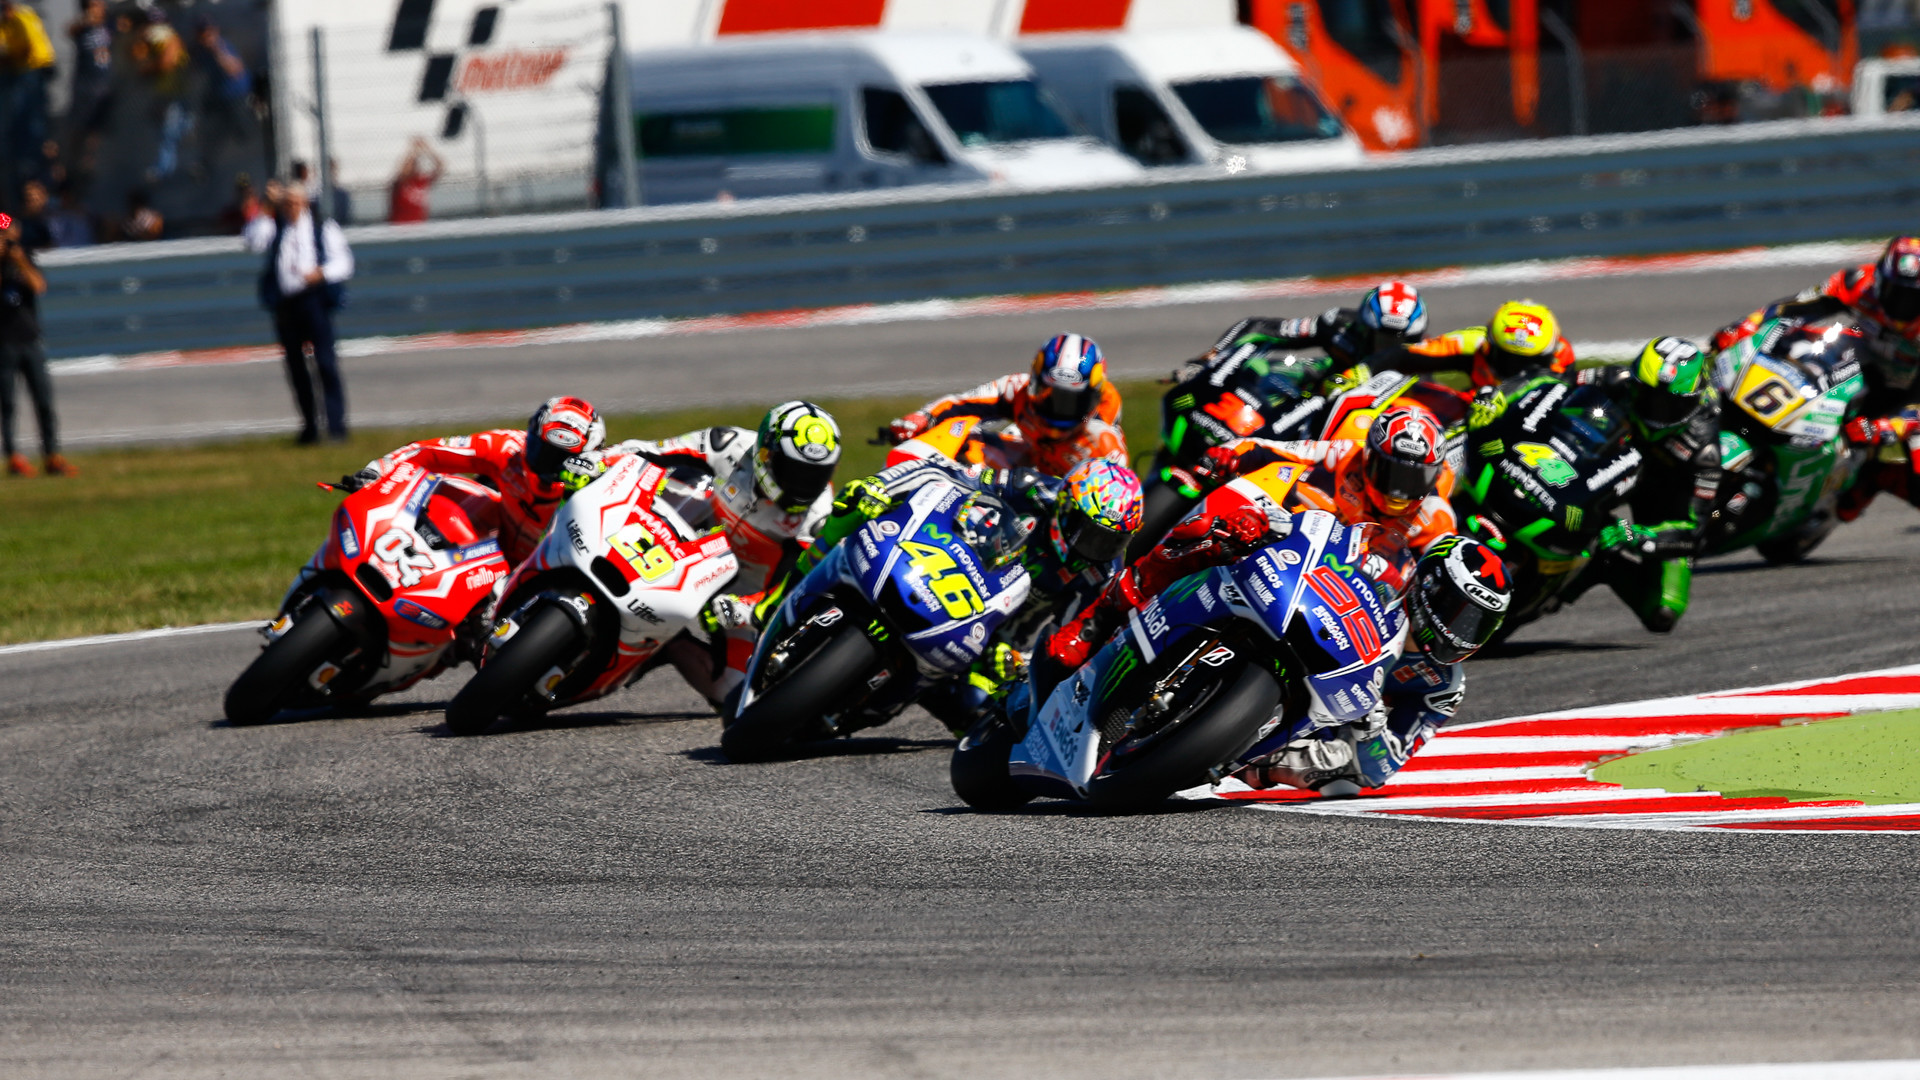 Motogp Wallpaper HD 62 images